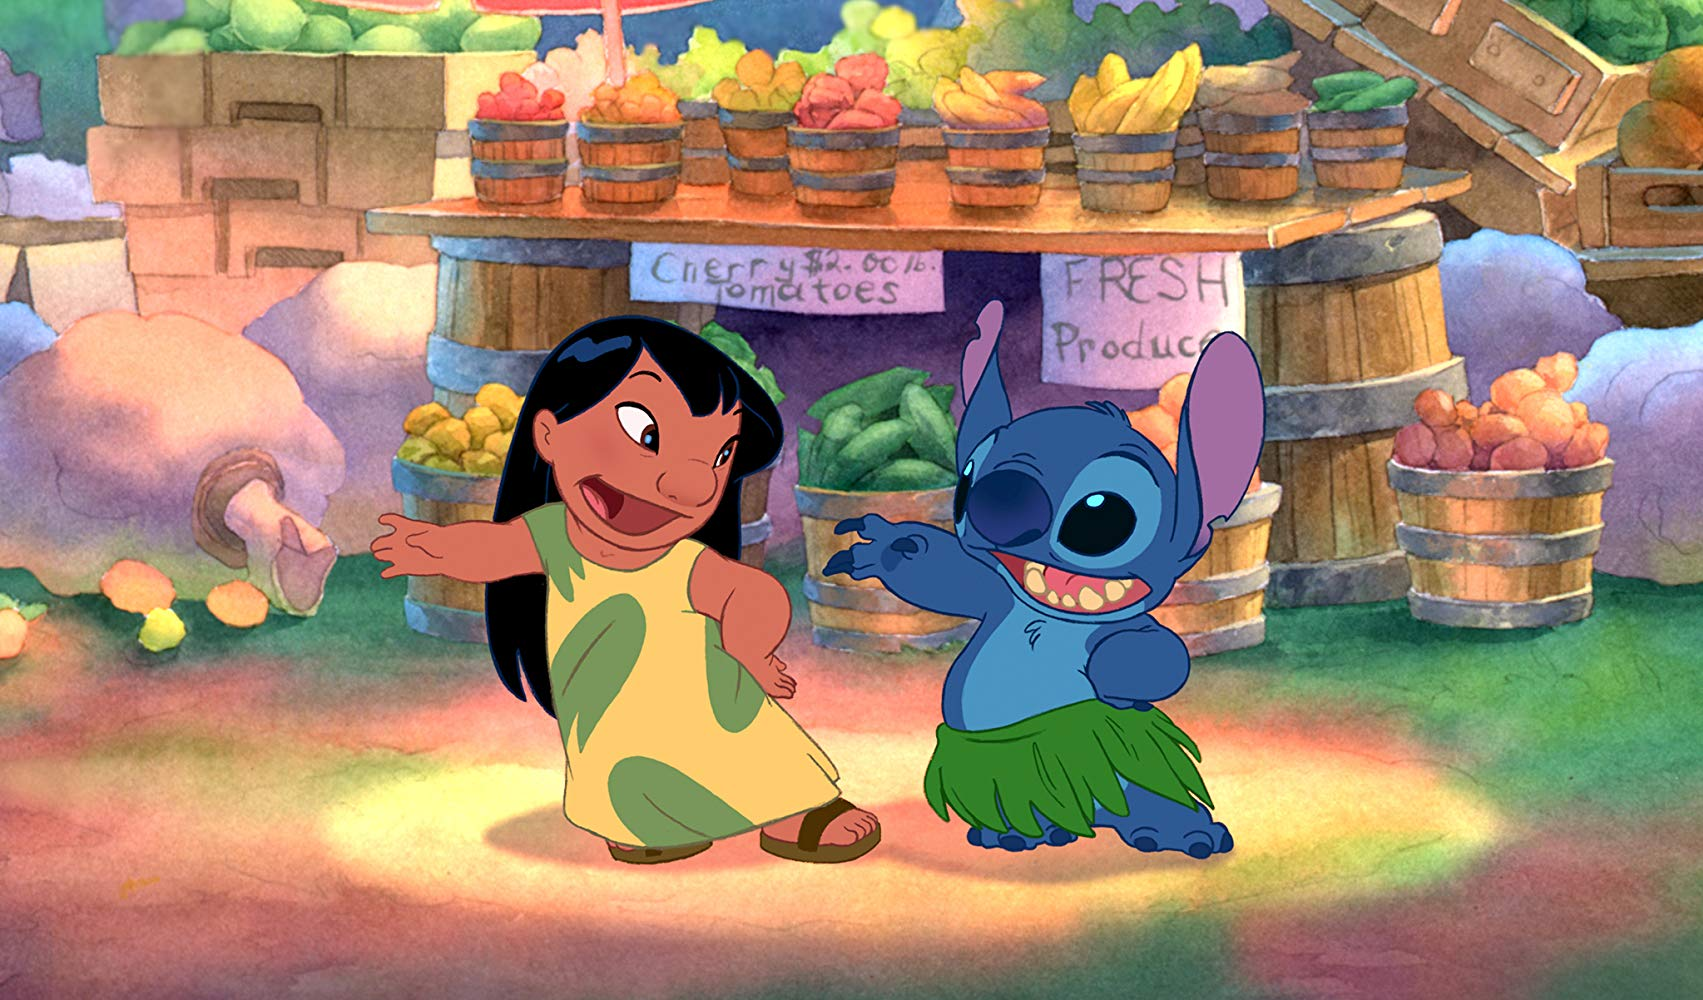 Lilo (voiced by Daveigh Chase0 and Stitch aka Experiment 626 (voiced by co-director Chris Sanders) in Lilo & Stitch (2002)